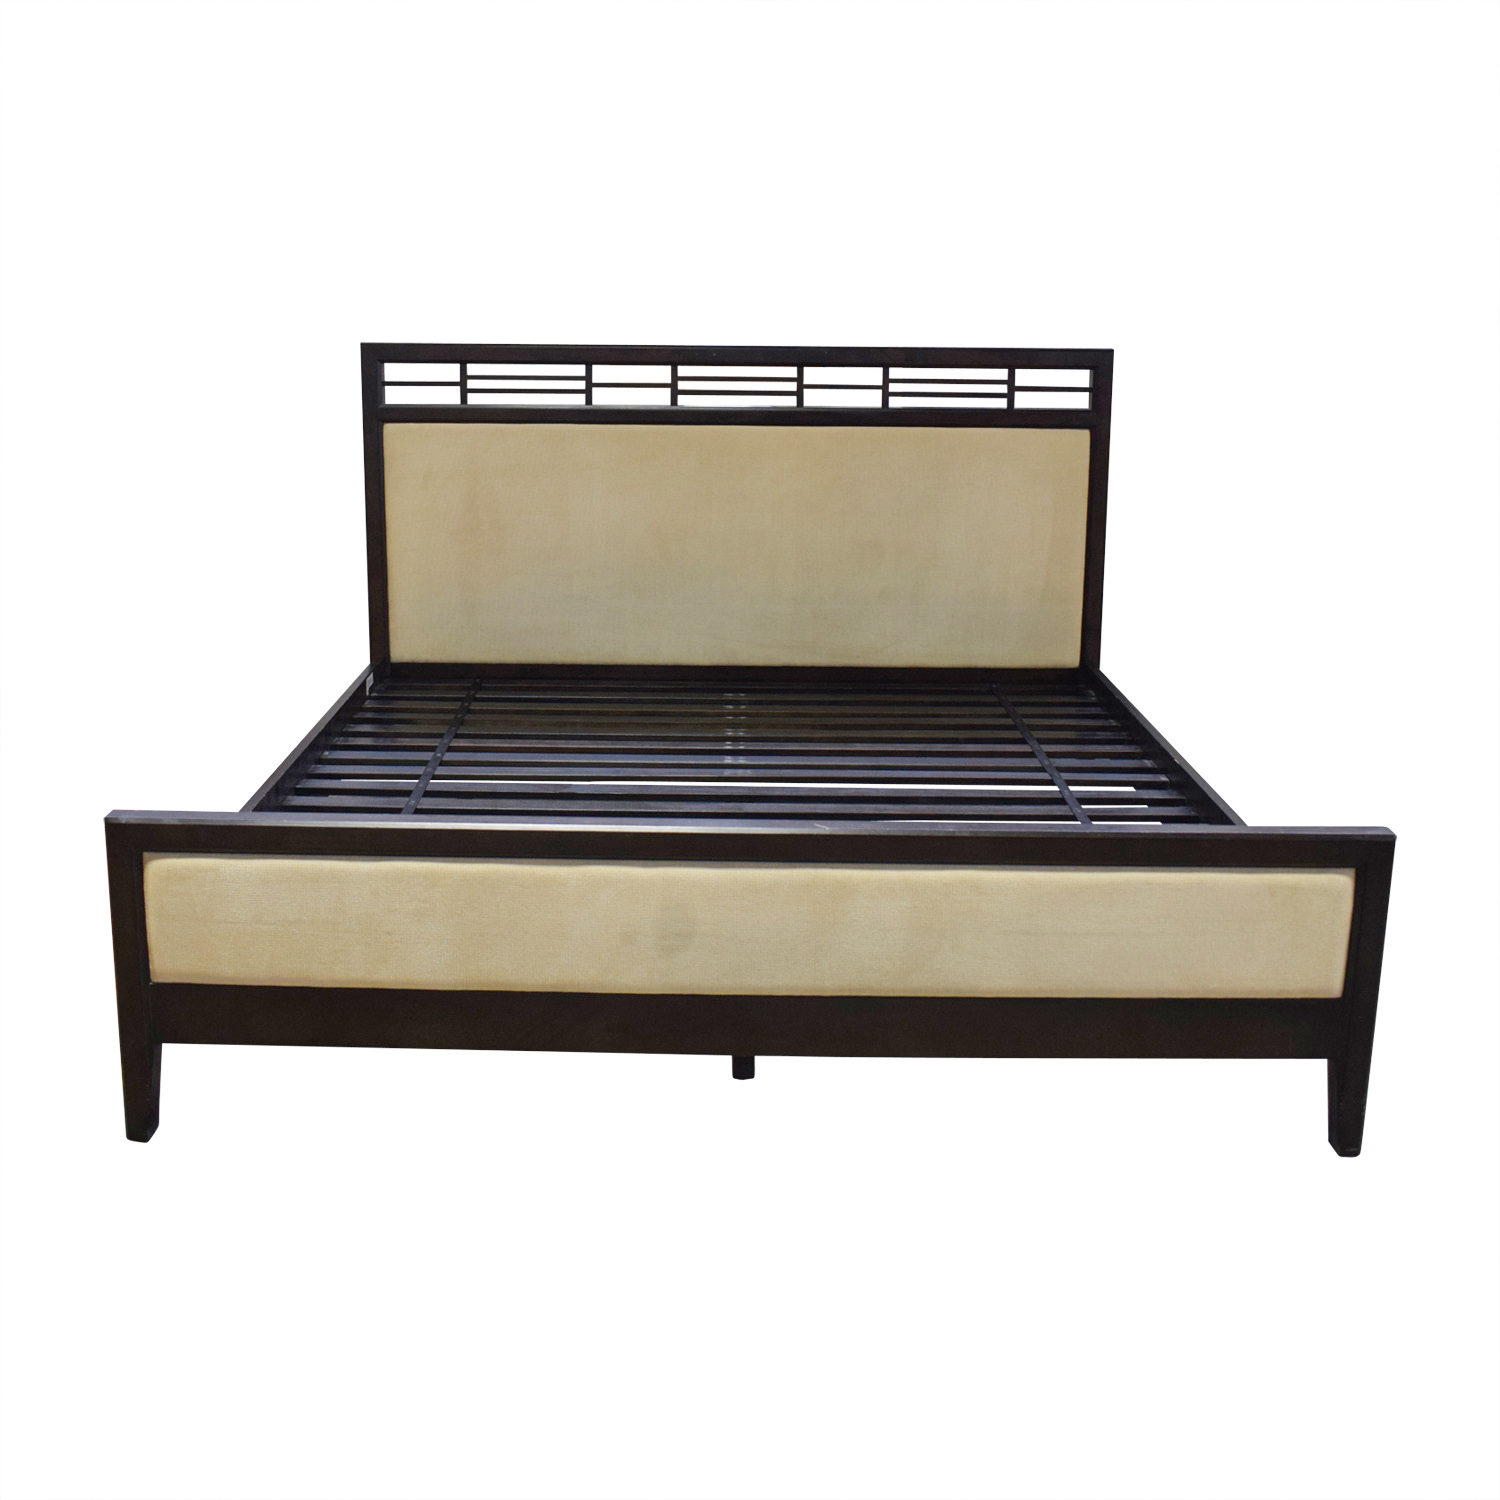 Crate & Barrel Crate & Barrel Beige Upholstered Black King Bed Frame dimensions